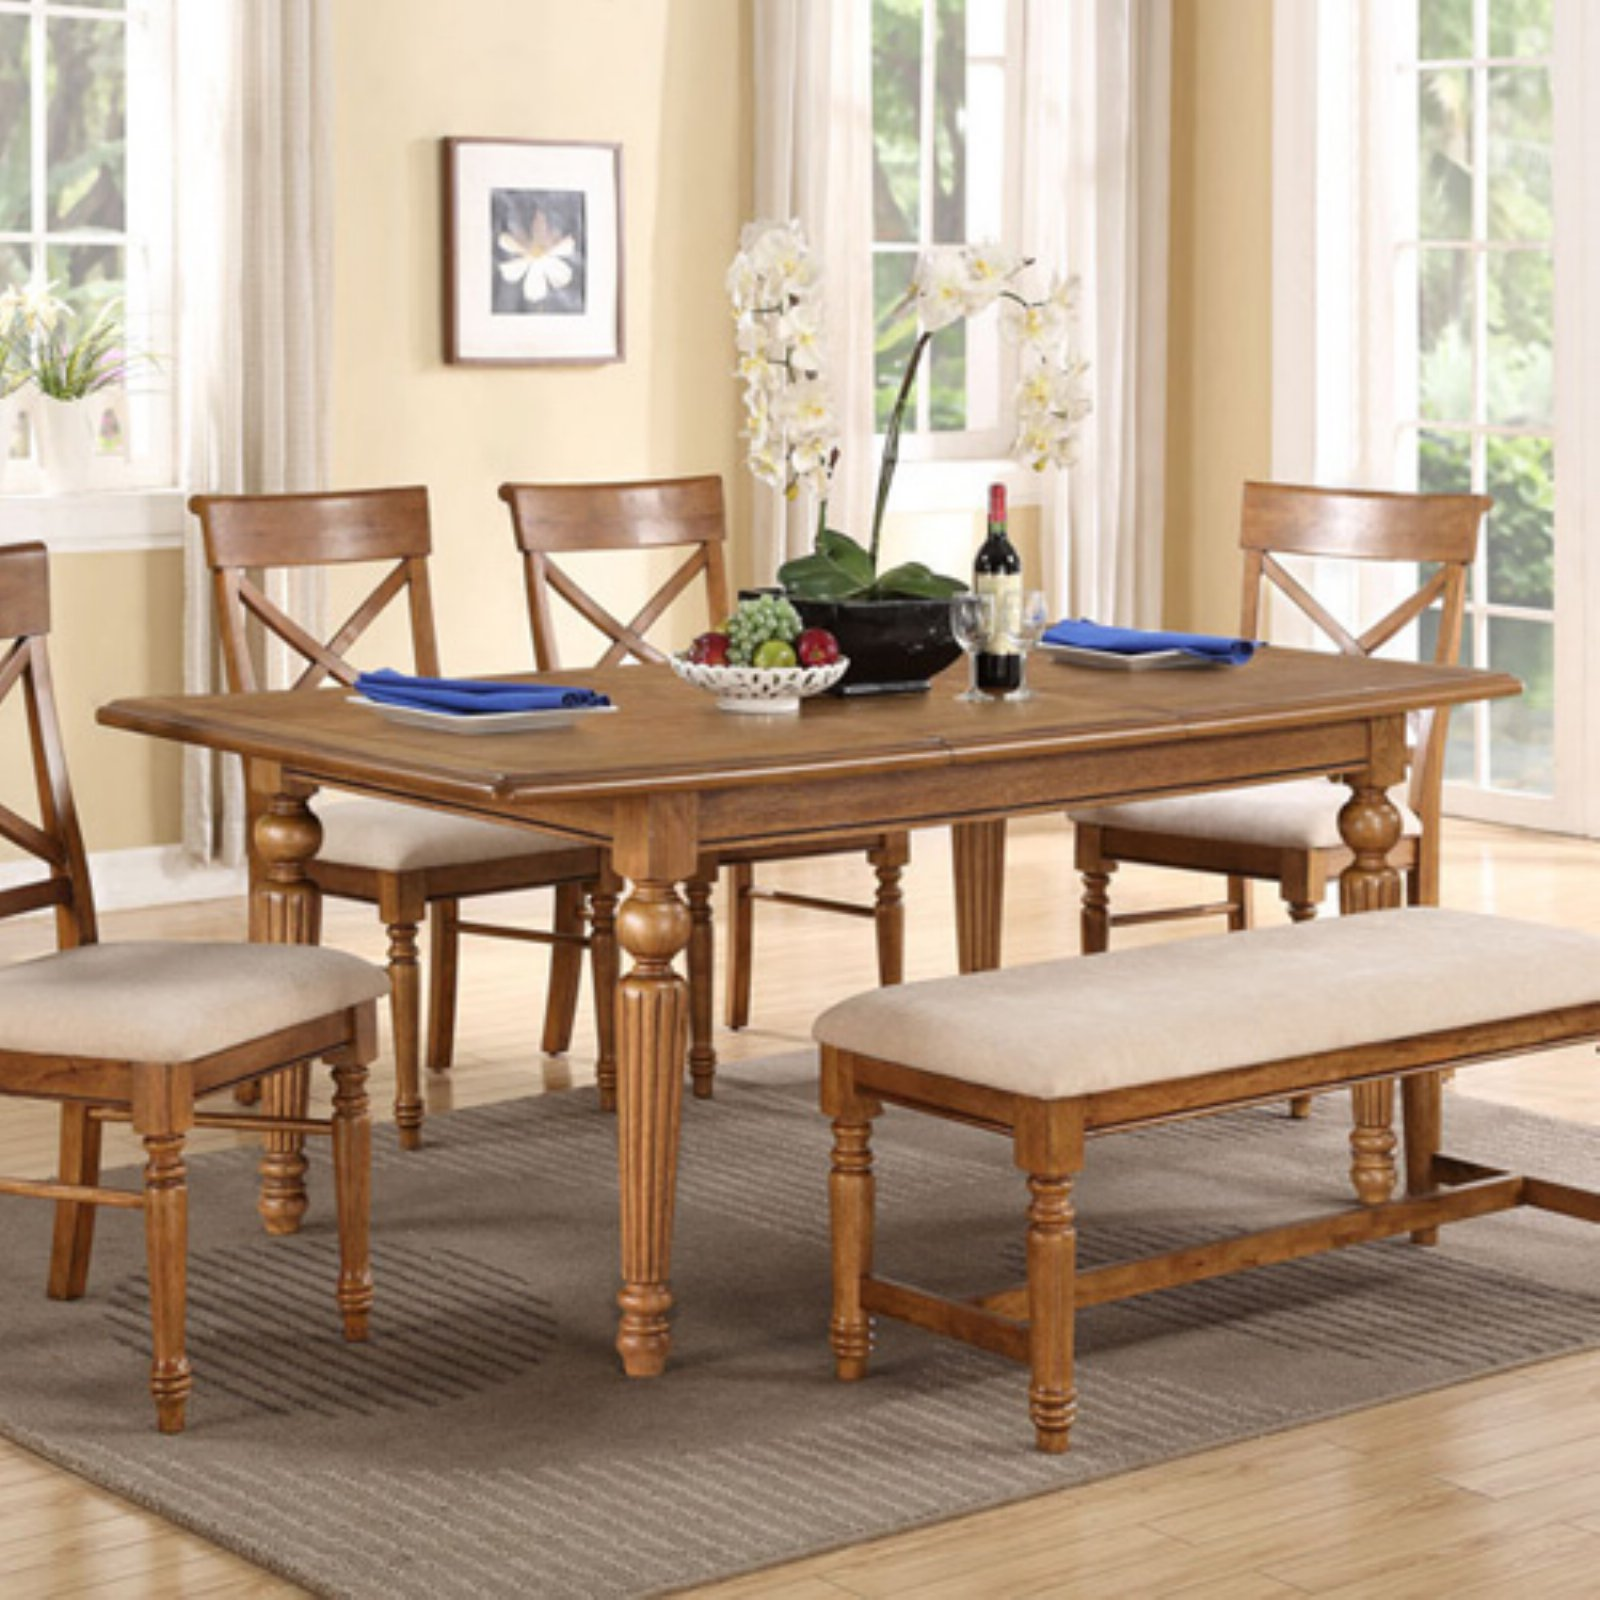 Emerald Home Fowler 68 in. Dining Table with Butterfly Leaf - Brown